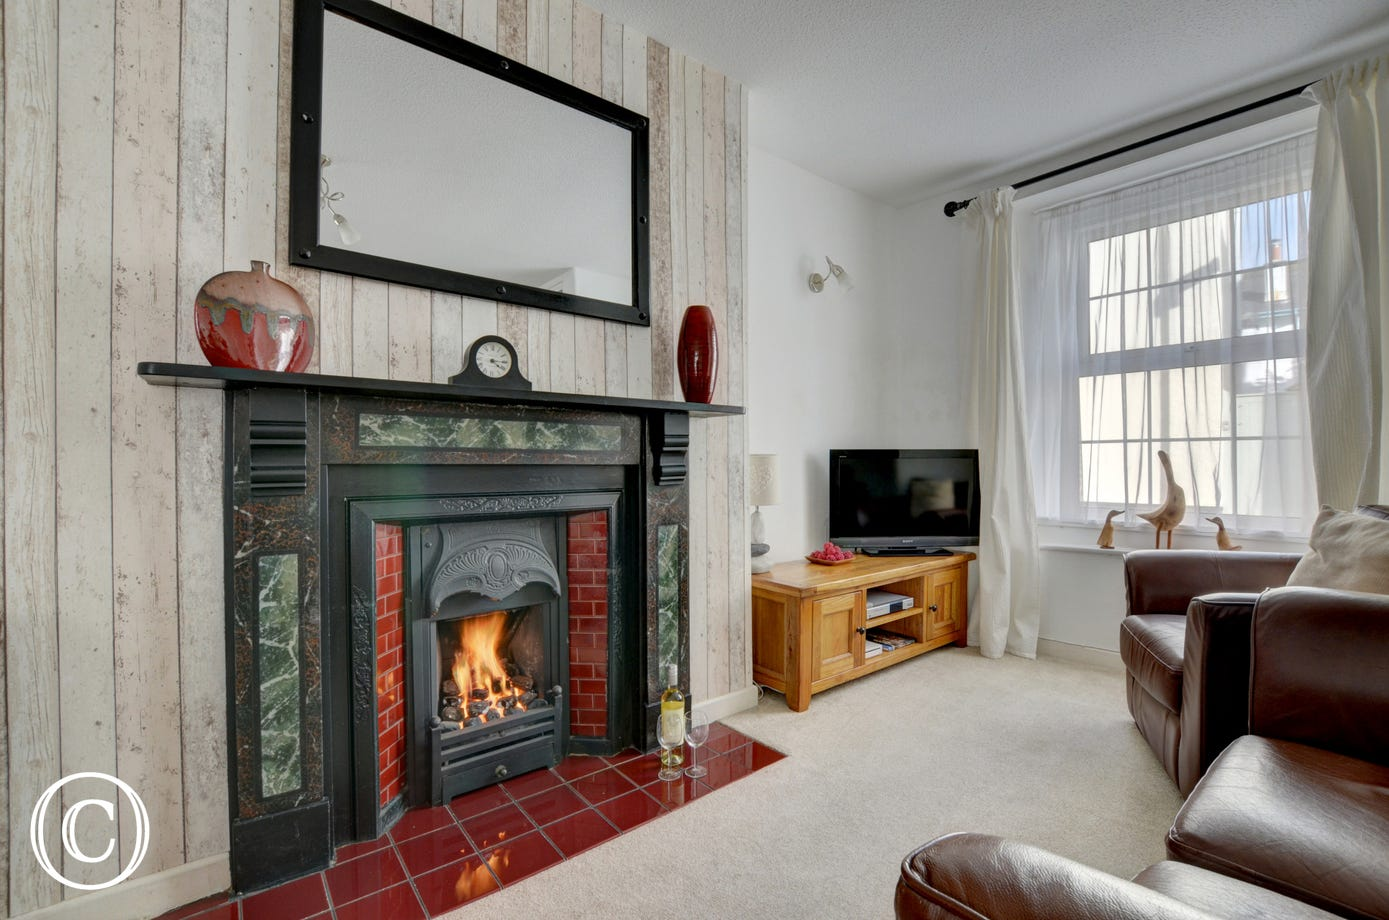 Enjoy watching a film in the cosy sitting room